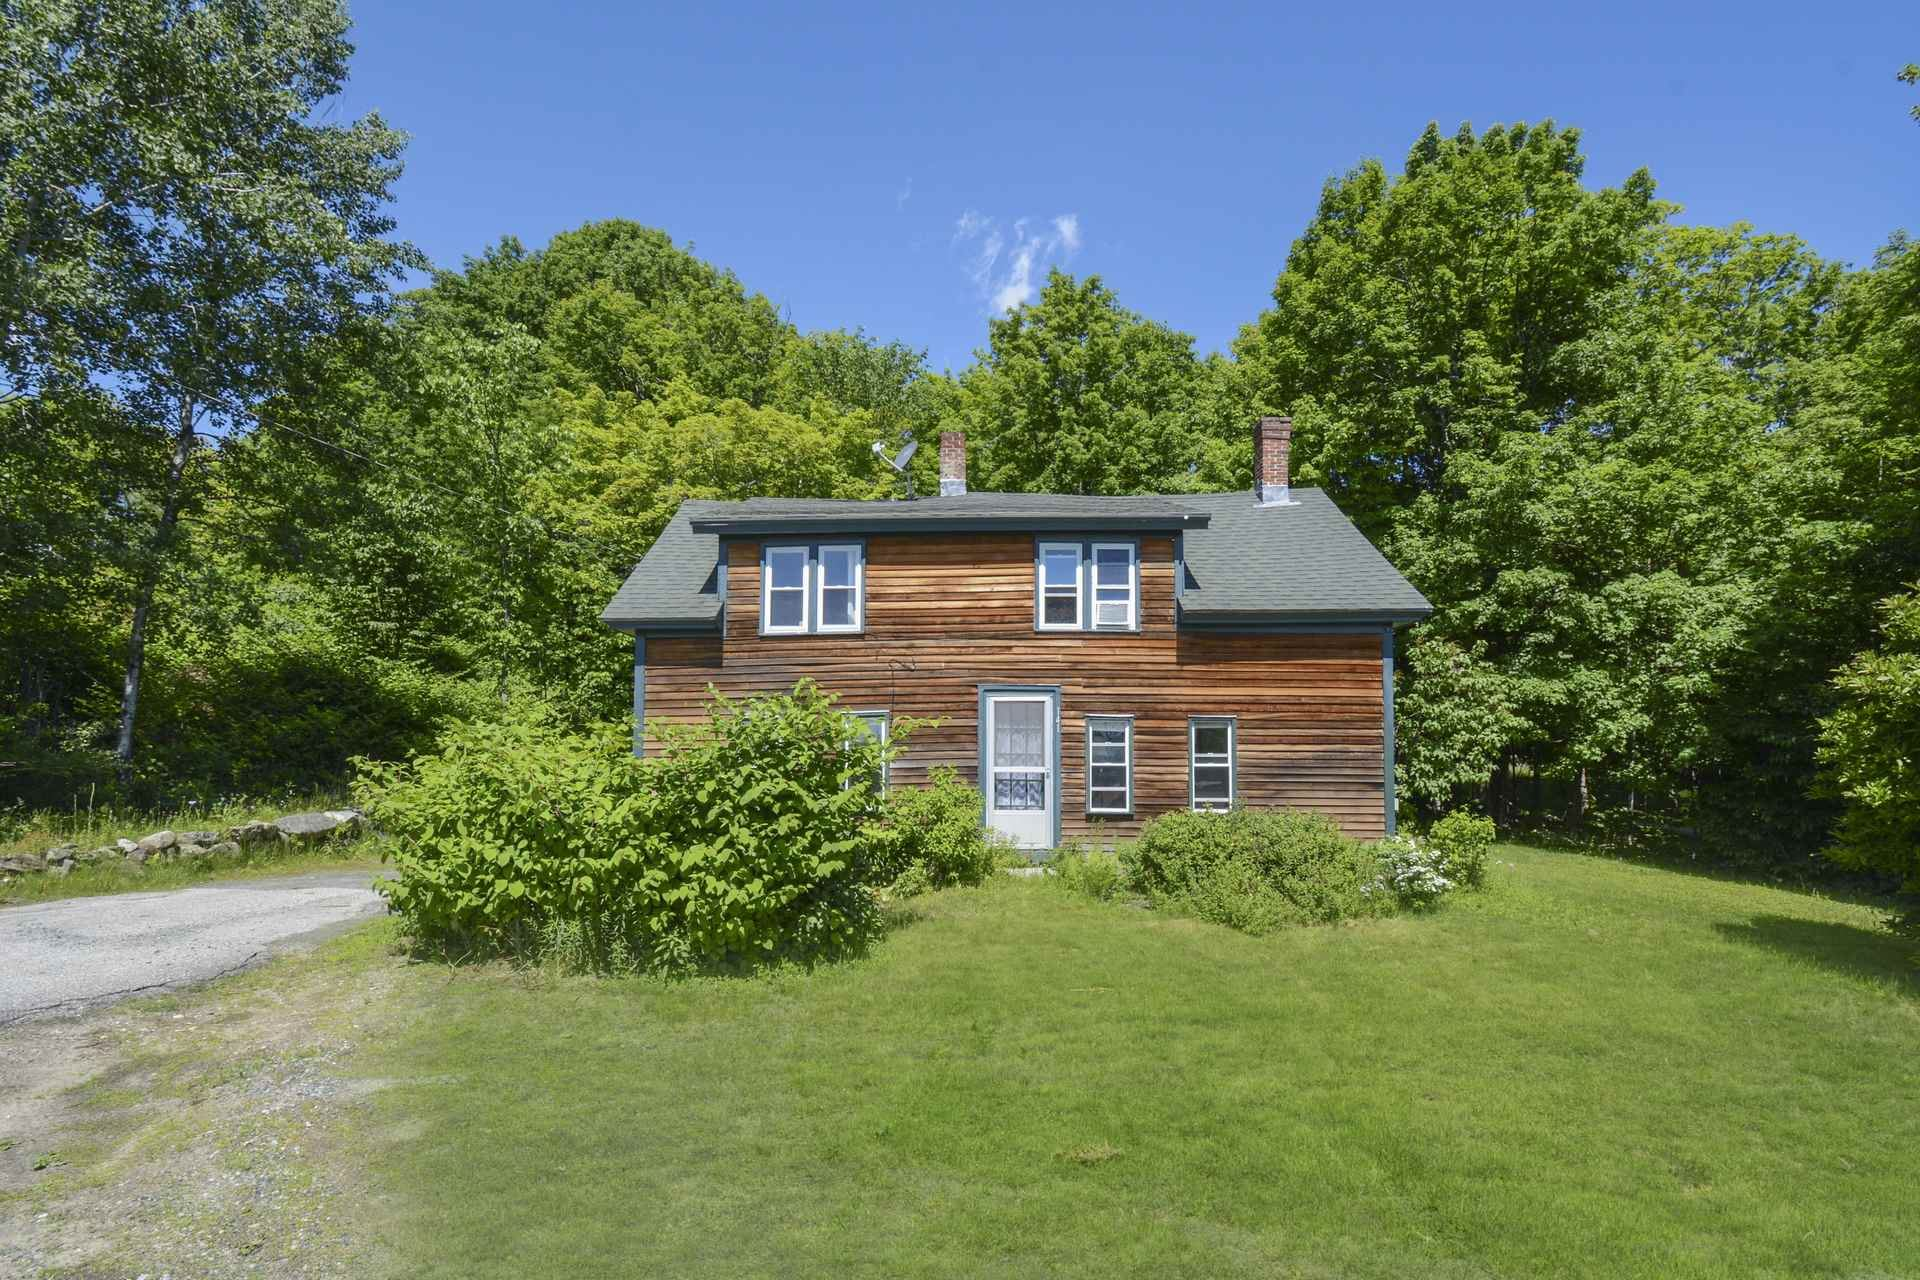 141 Andover Road, New London, NH 03257 - MLS#: 4814637